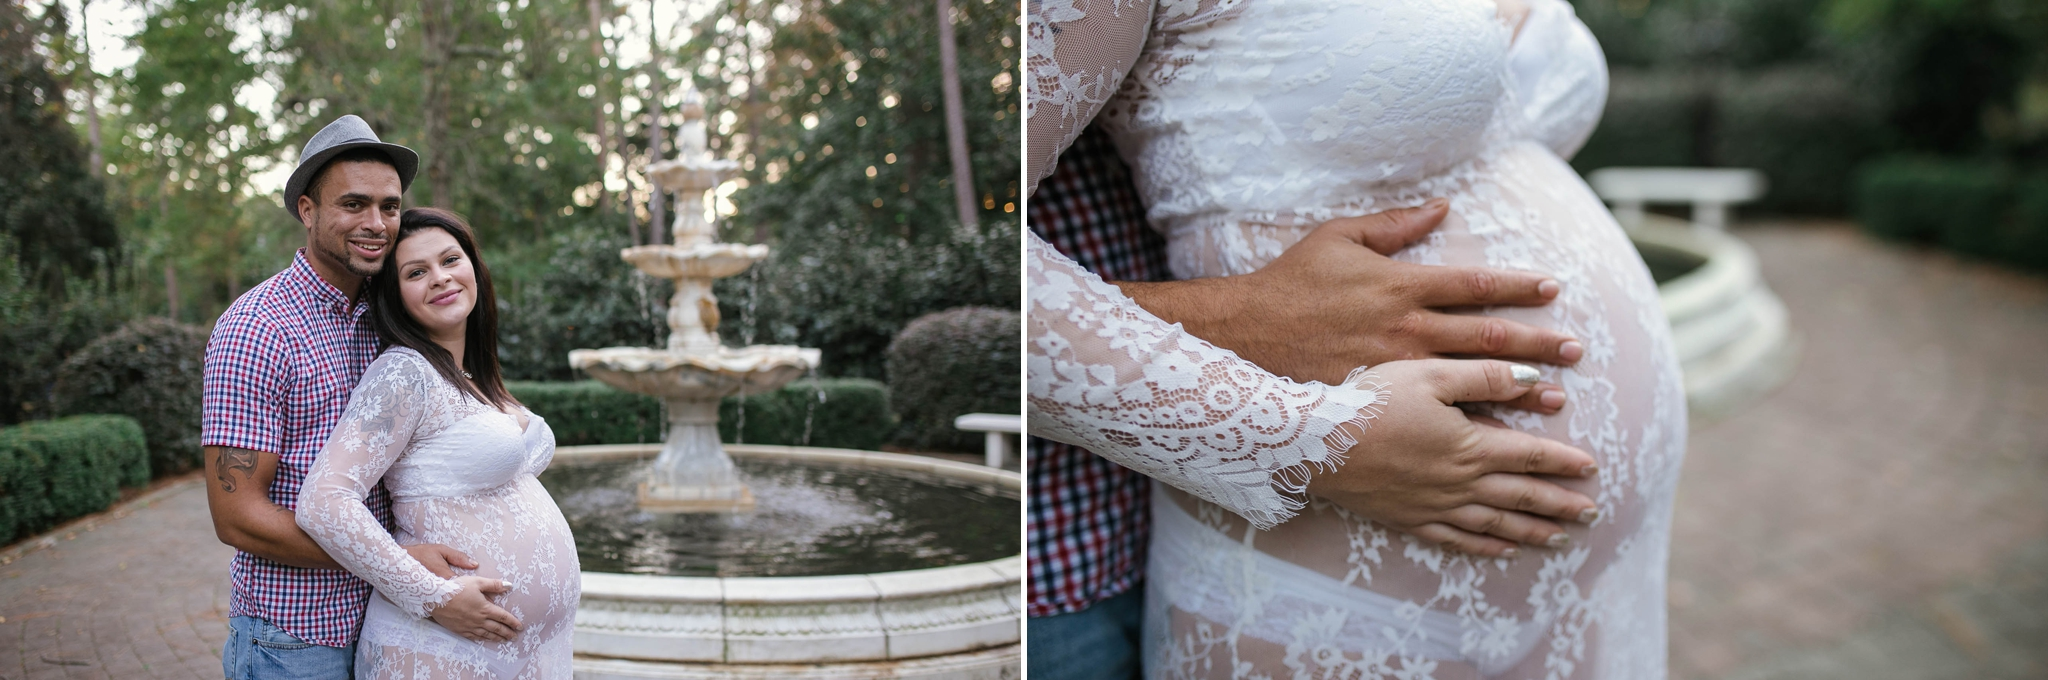 Maternity Session at the Weymouth Center in Southern Pines, NC